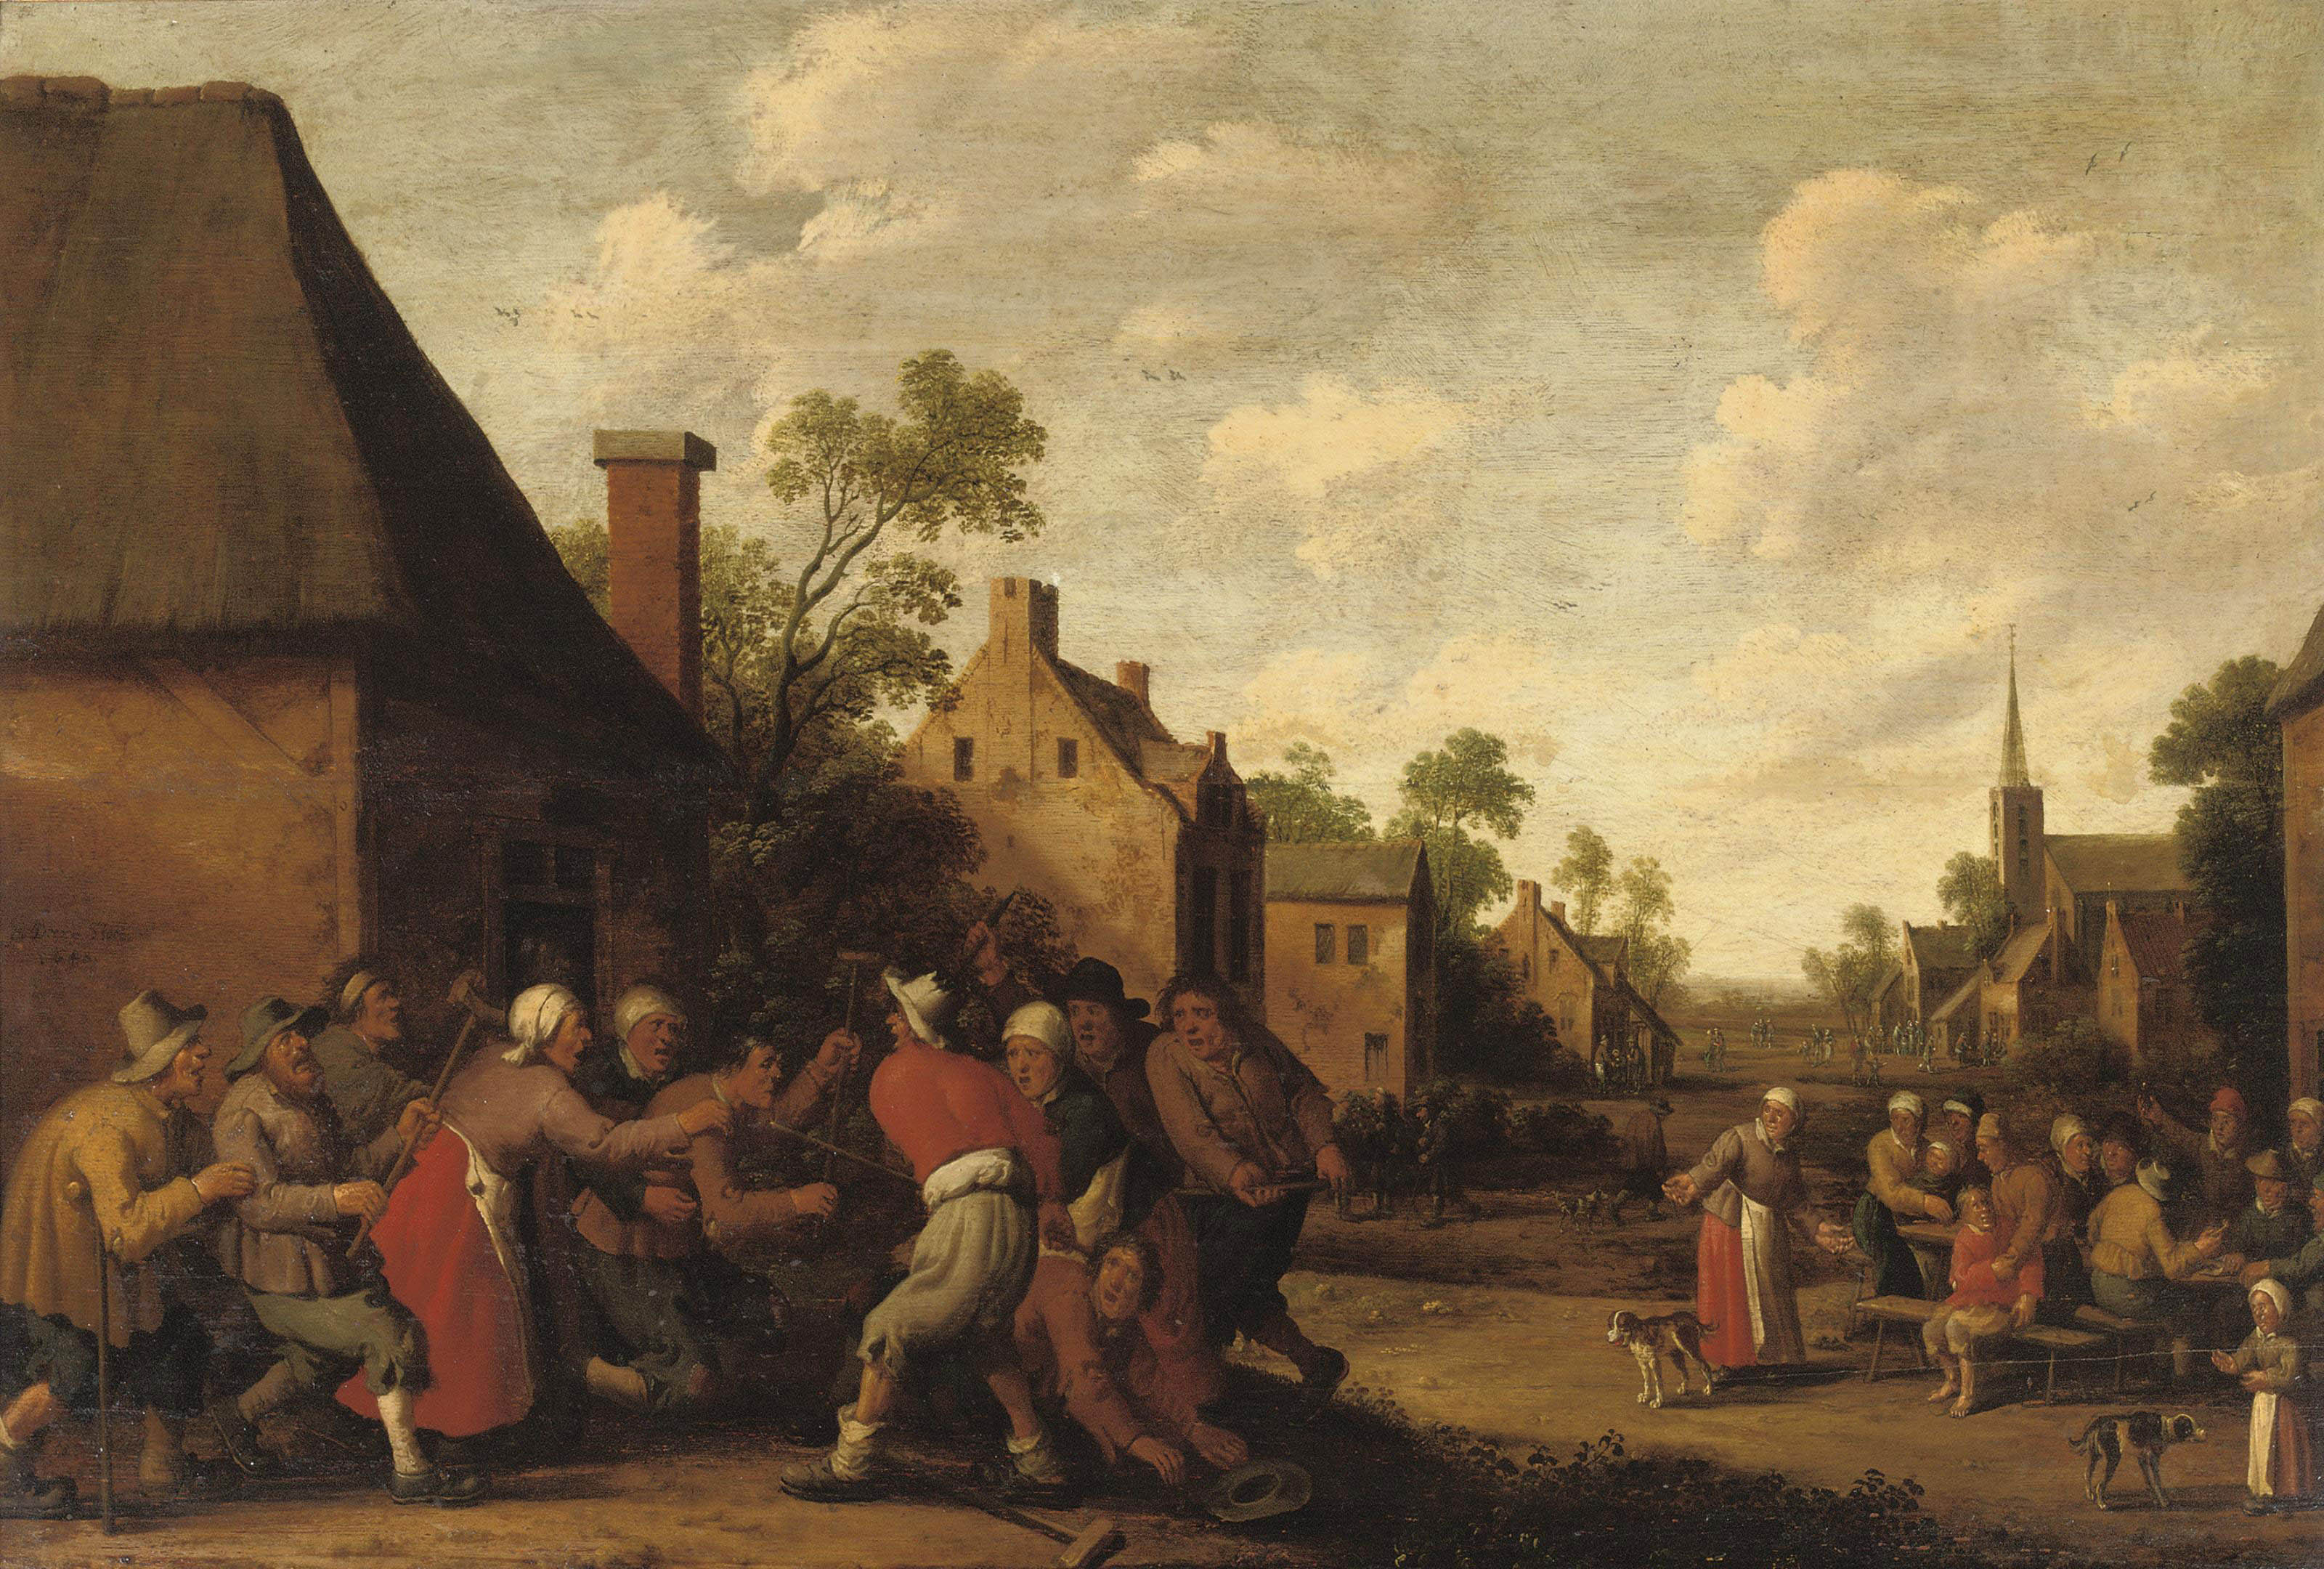 A village scene with a brawl in front of an inn